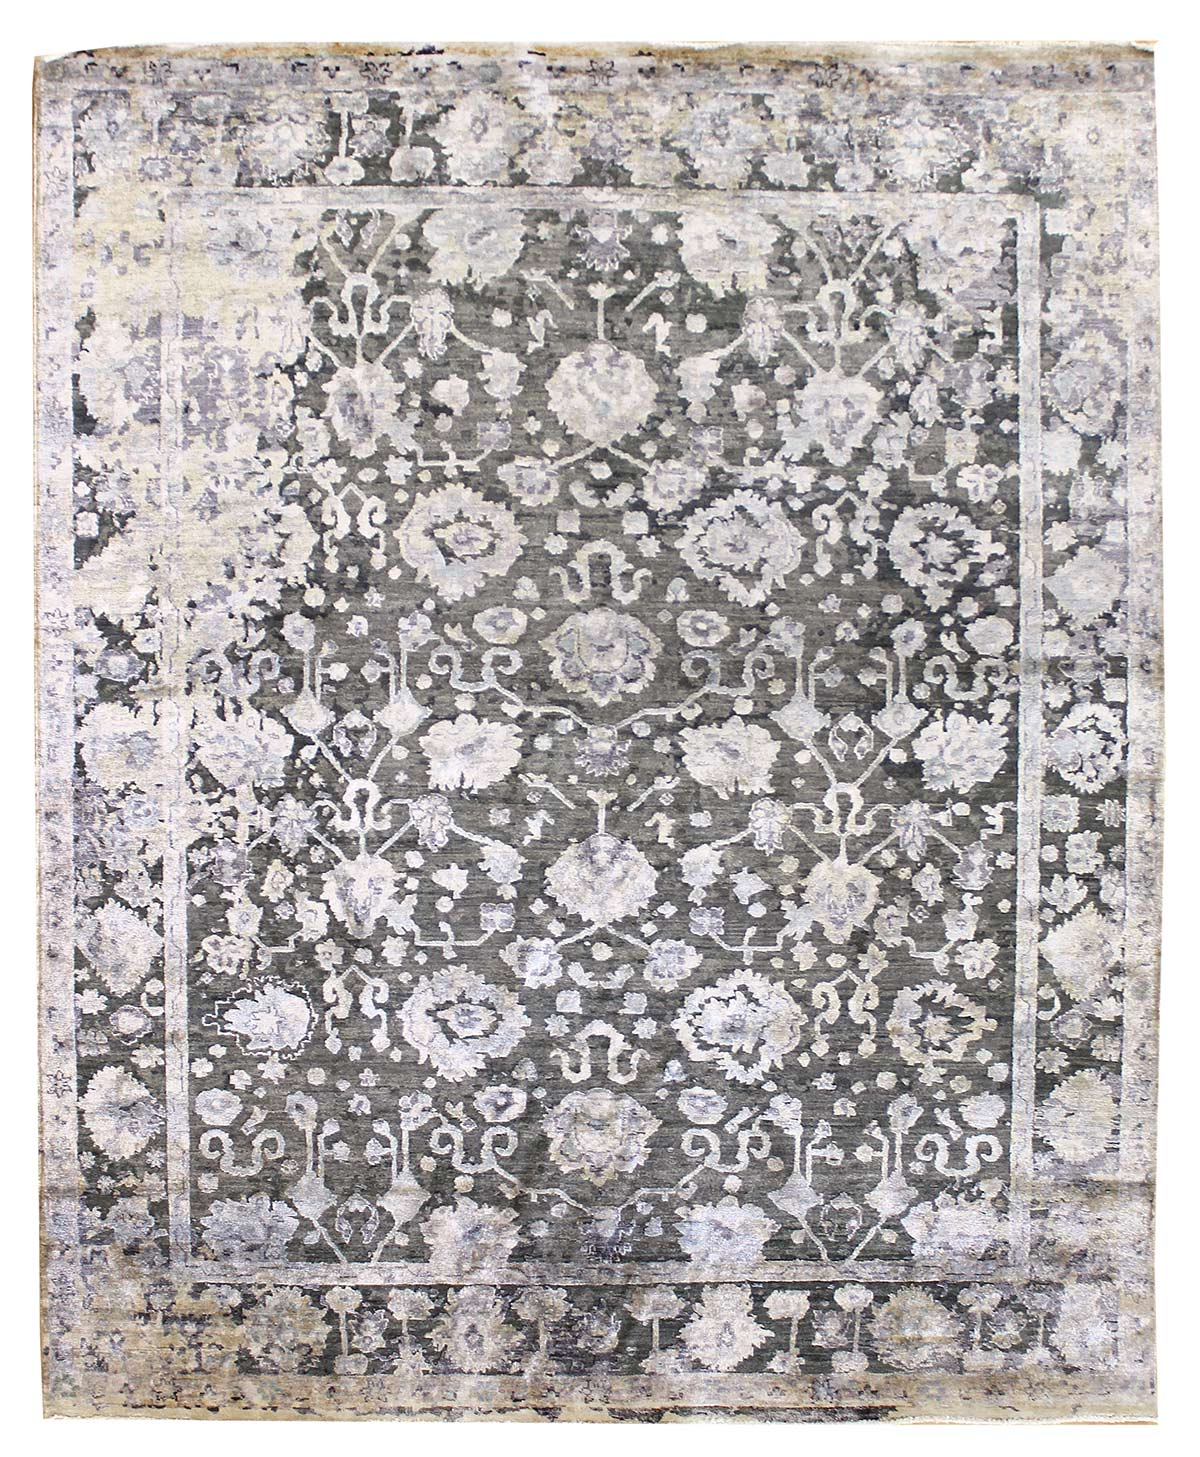 Erased Agra Handwoven Contemporary Rug